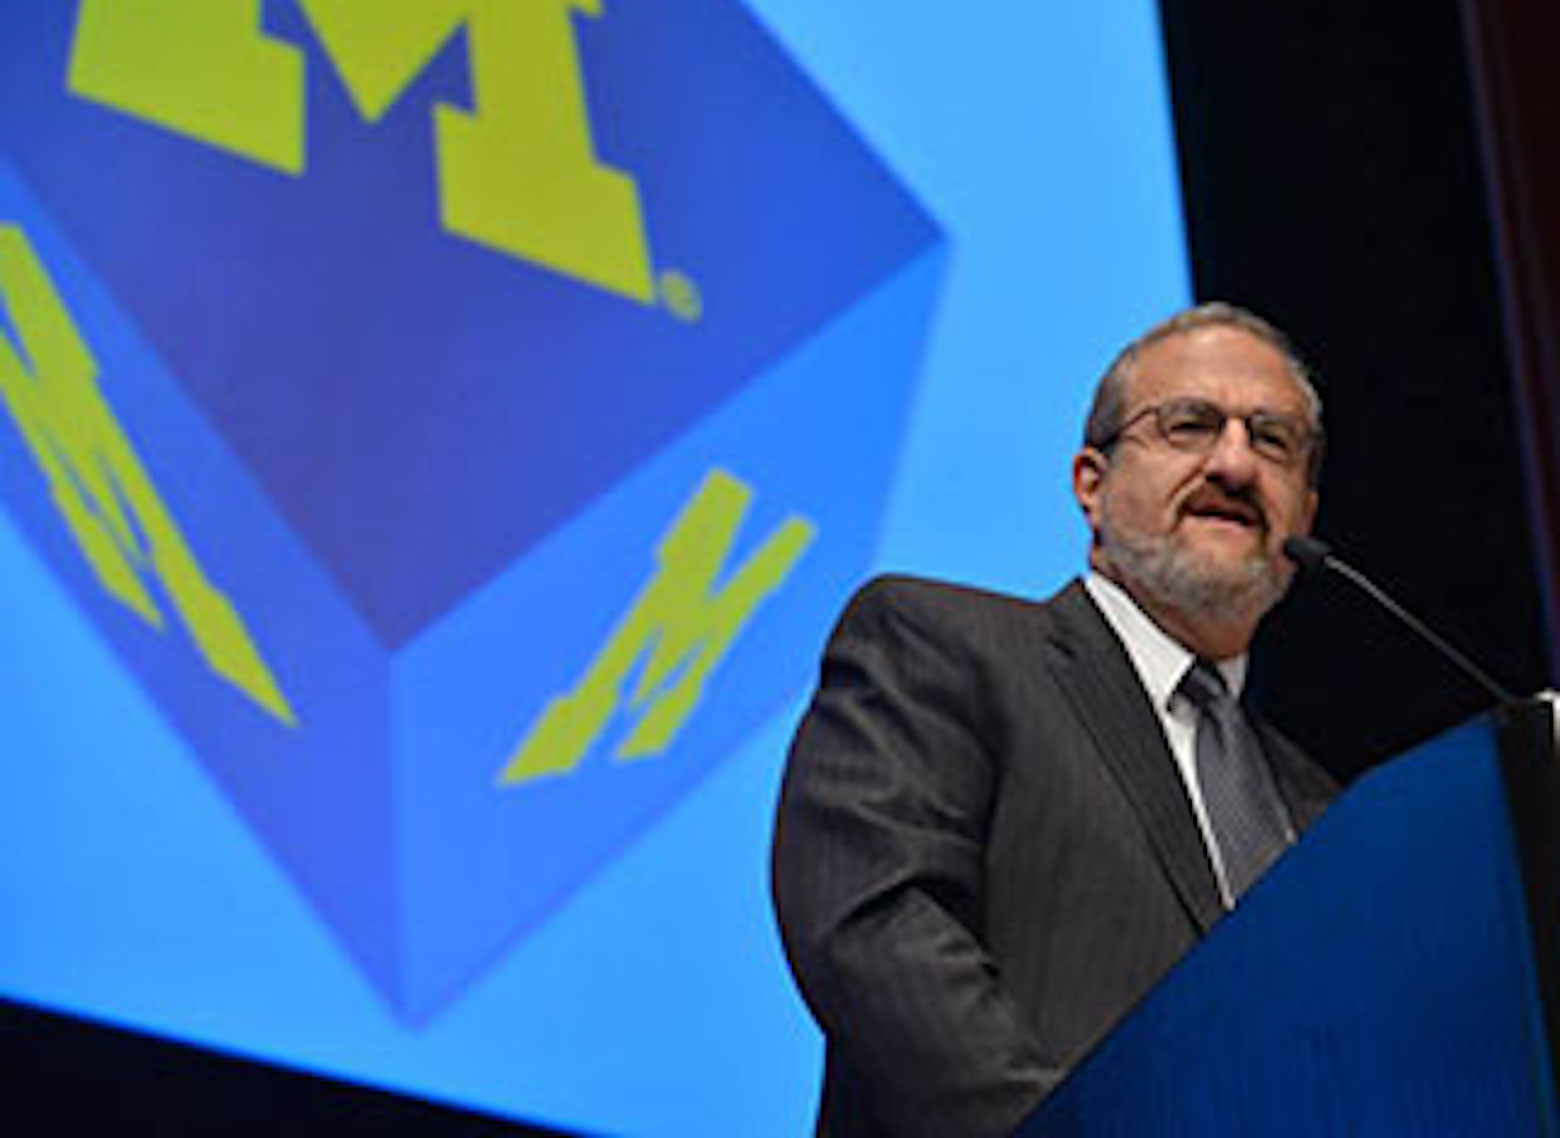 President Mark Schlissel addresses the crowd at the MCubed Symposium.